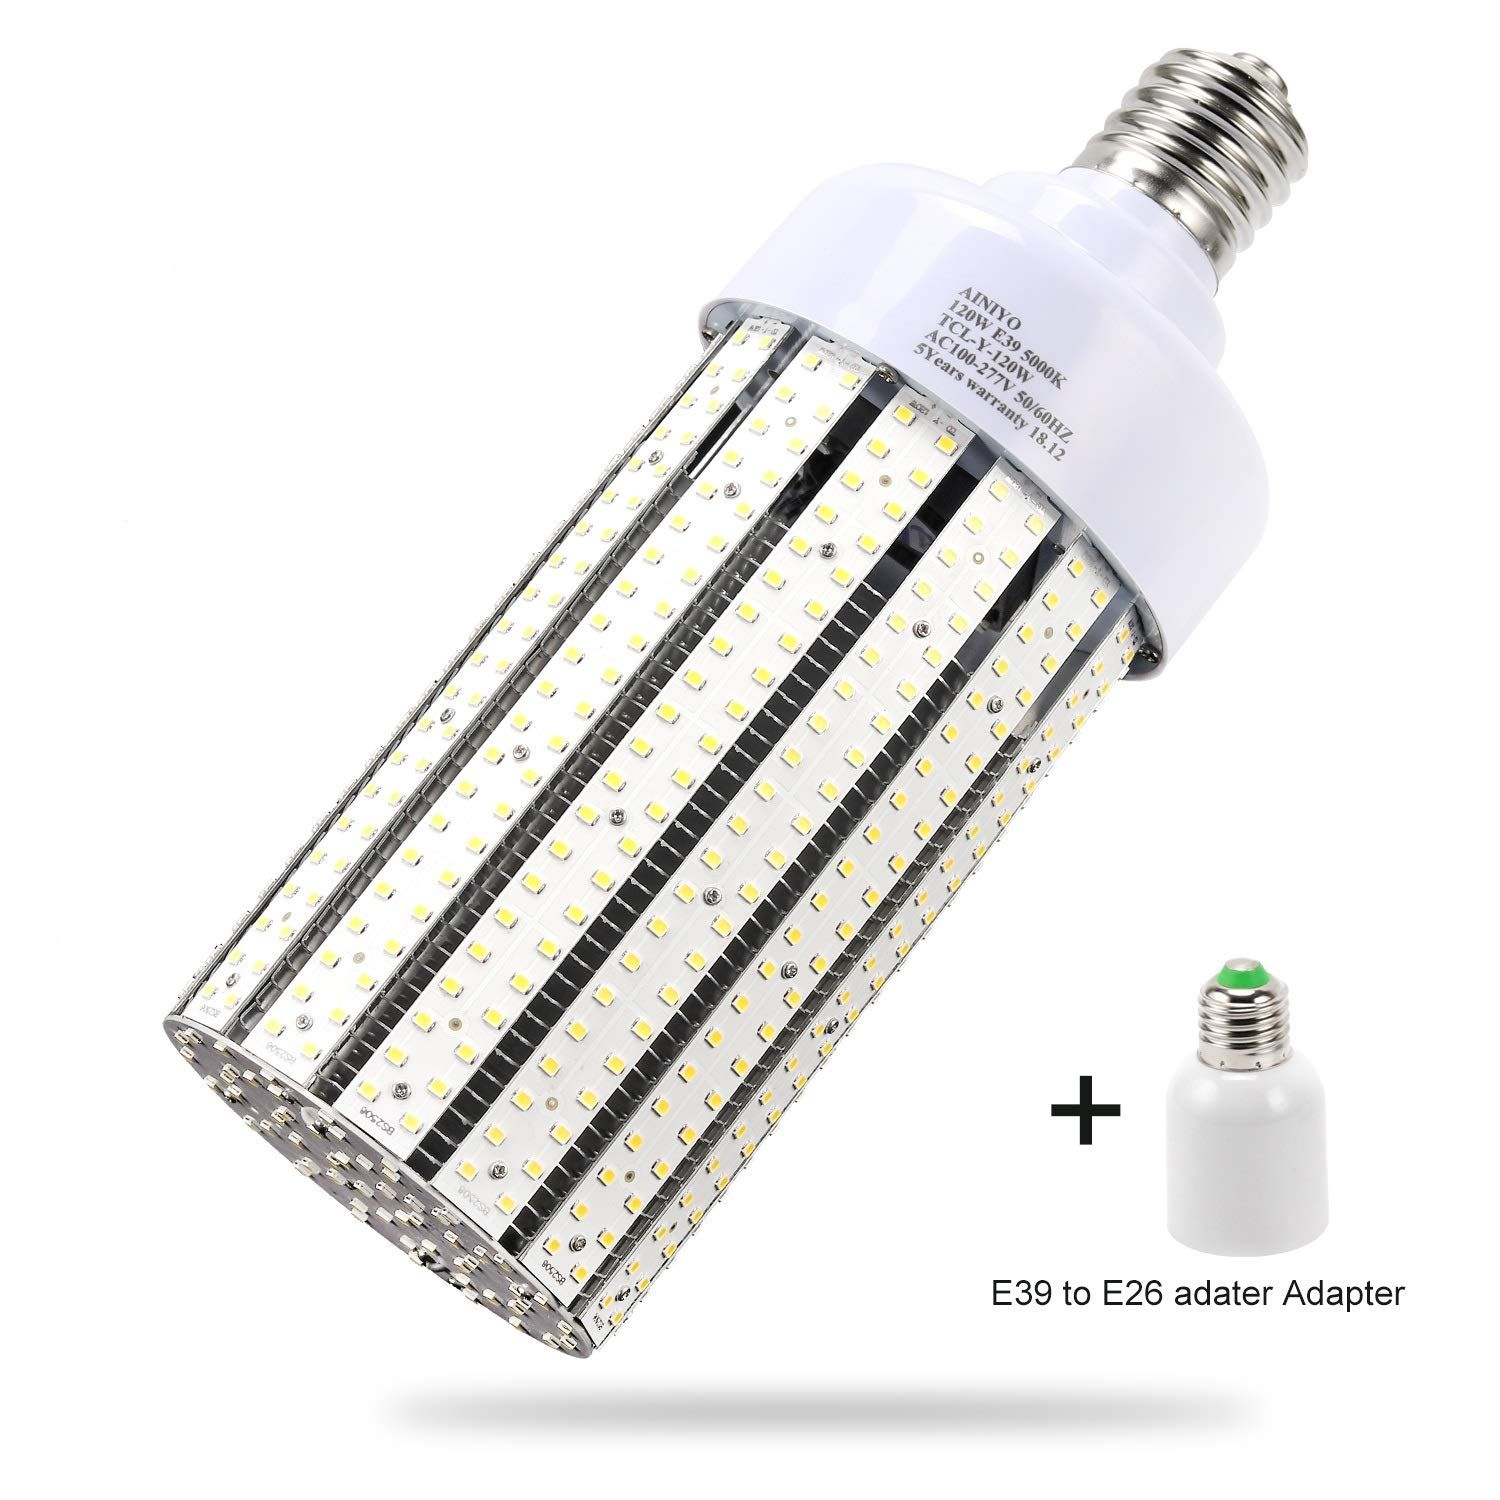 120w Led Corn Cob Light Bulb Large Mogul Base E39 Led Bulbs 5000k Daylight Ac110 277v Led Replacement 600w Metal Halide Hid Hps For S With Images Led Bulb Bulb Light Bulb